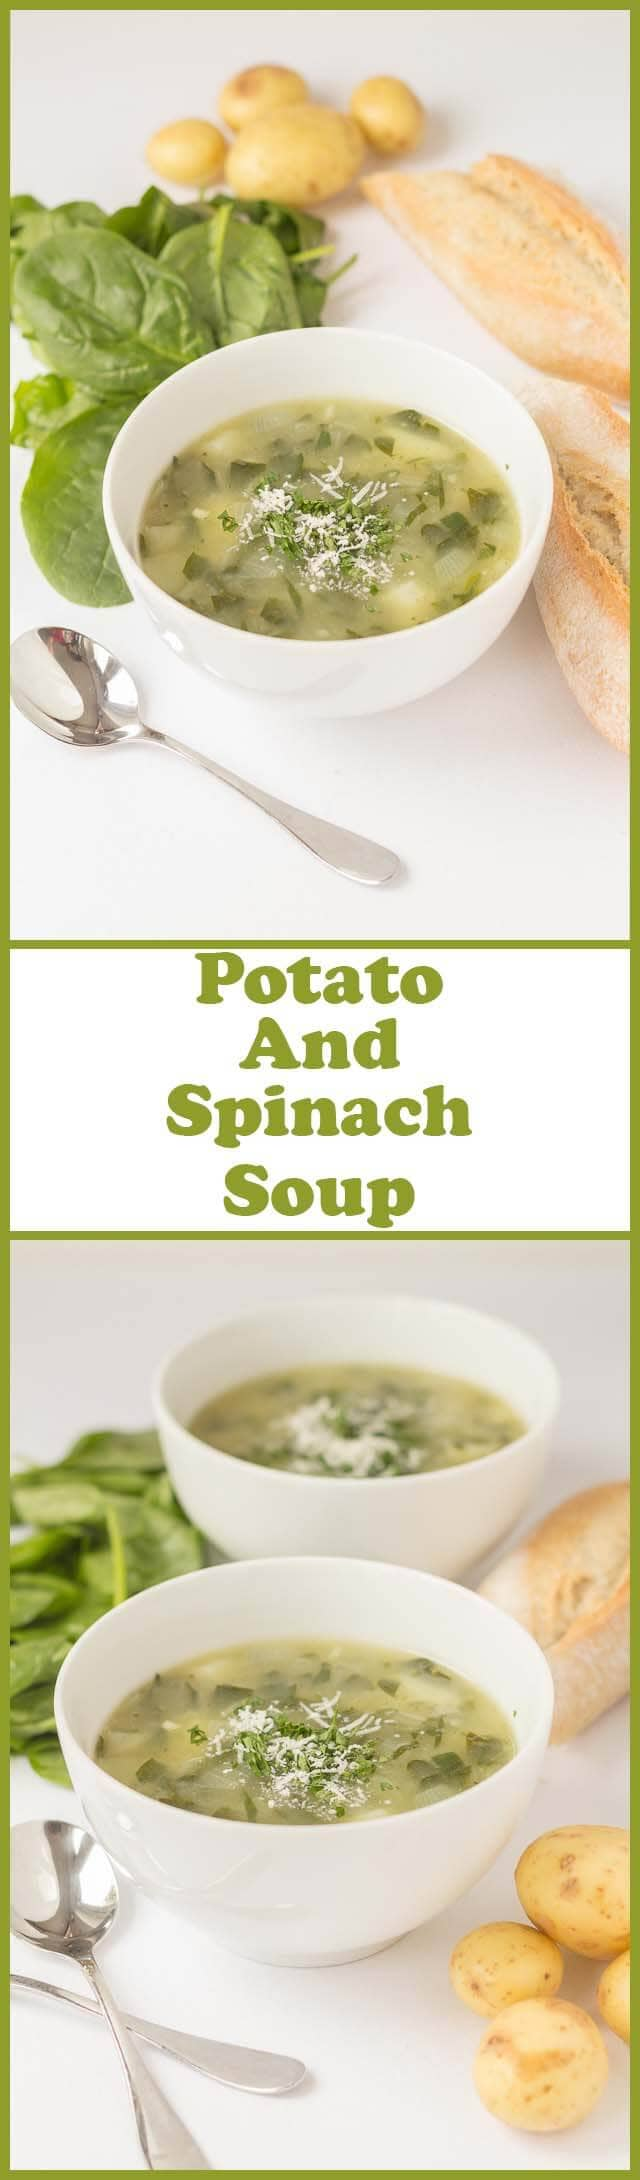 Potato and Spinach Soup is a tasty but budget friendly bowl of comforting goodness. Creamy tasting but not made with any cream so it's lower calorie and lower fat too!